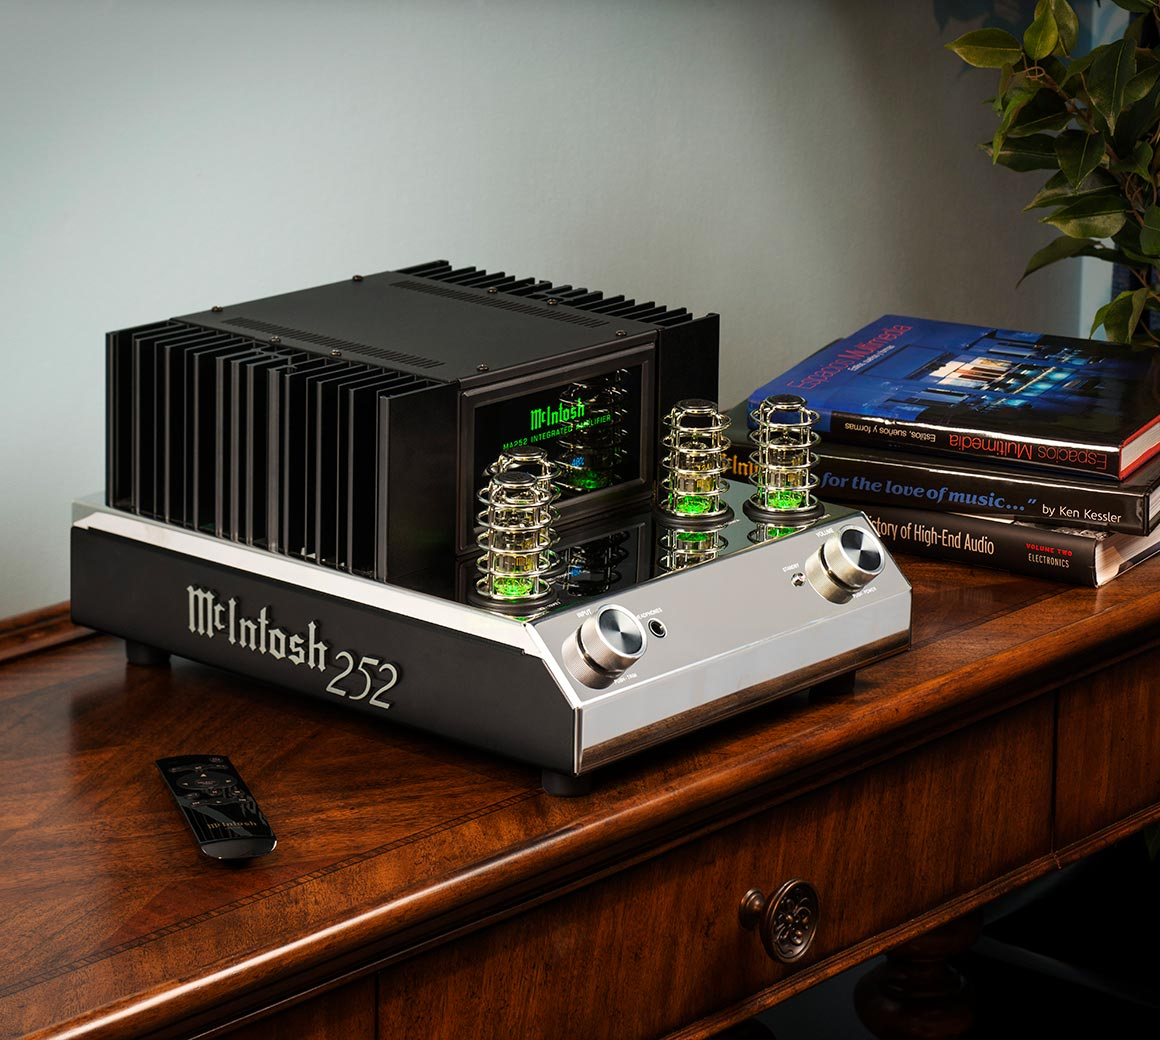 McIntosh's MA252 features a retro 50s/60s aesthetics